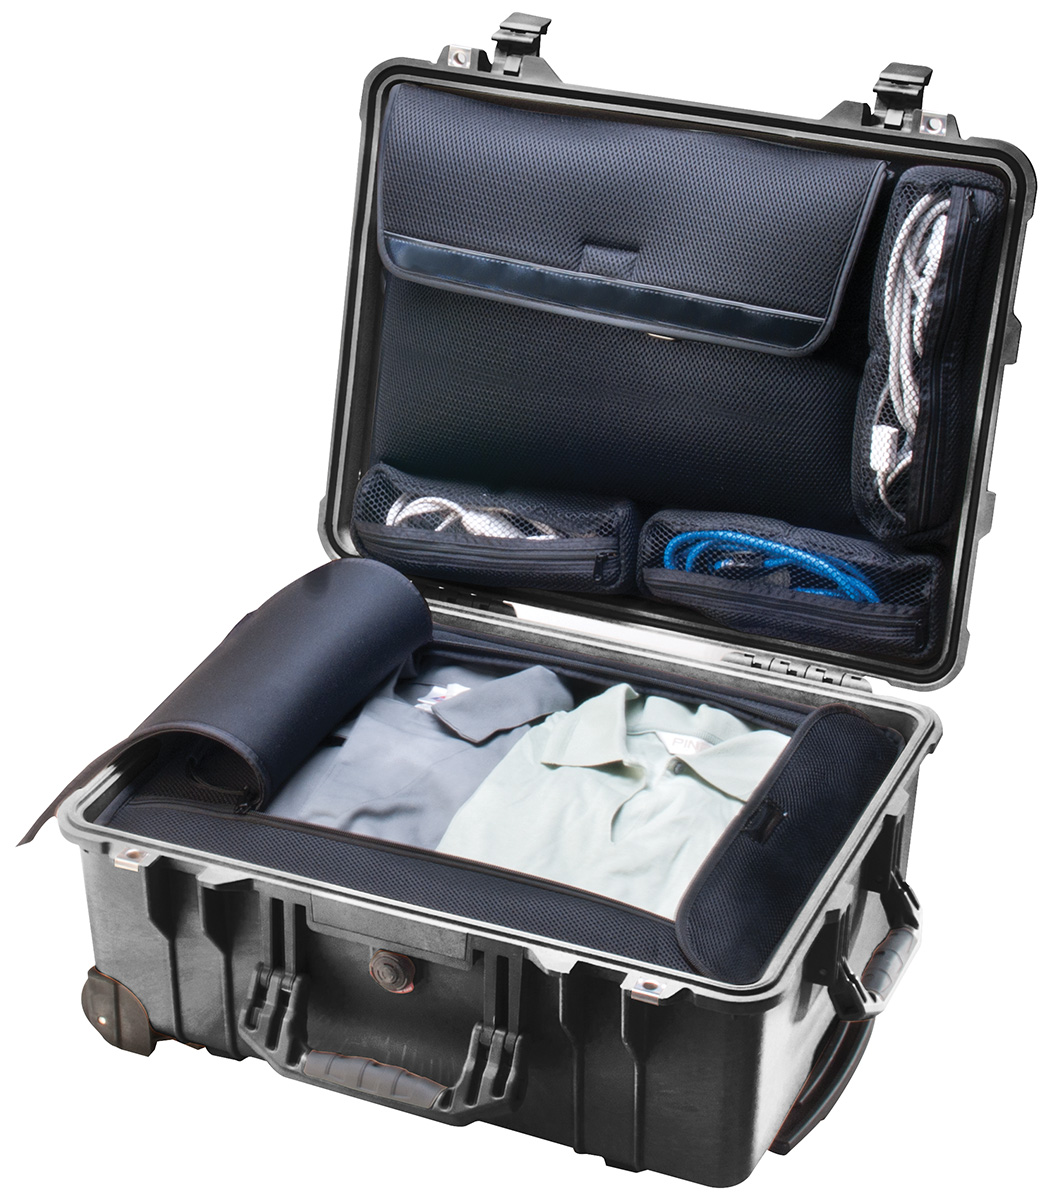 pelican peli products 1560LOC tough travel protographer hard case